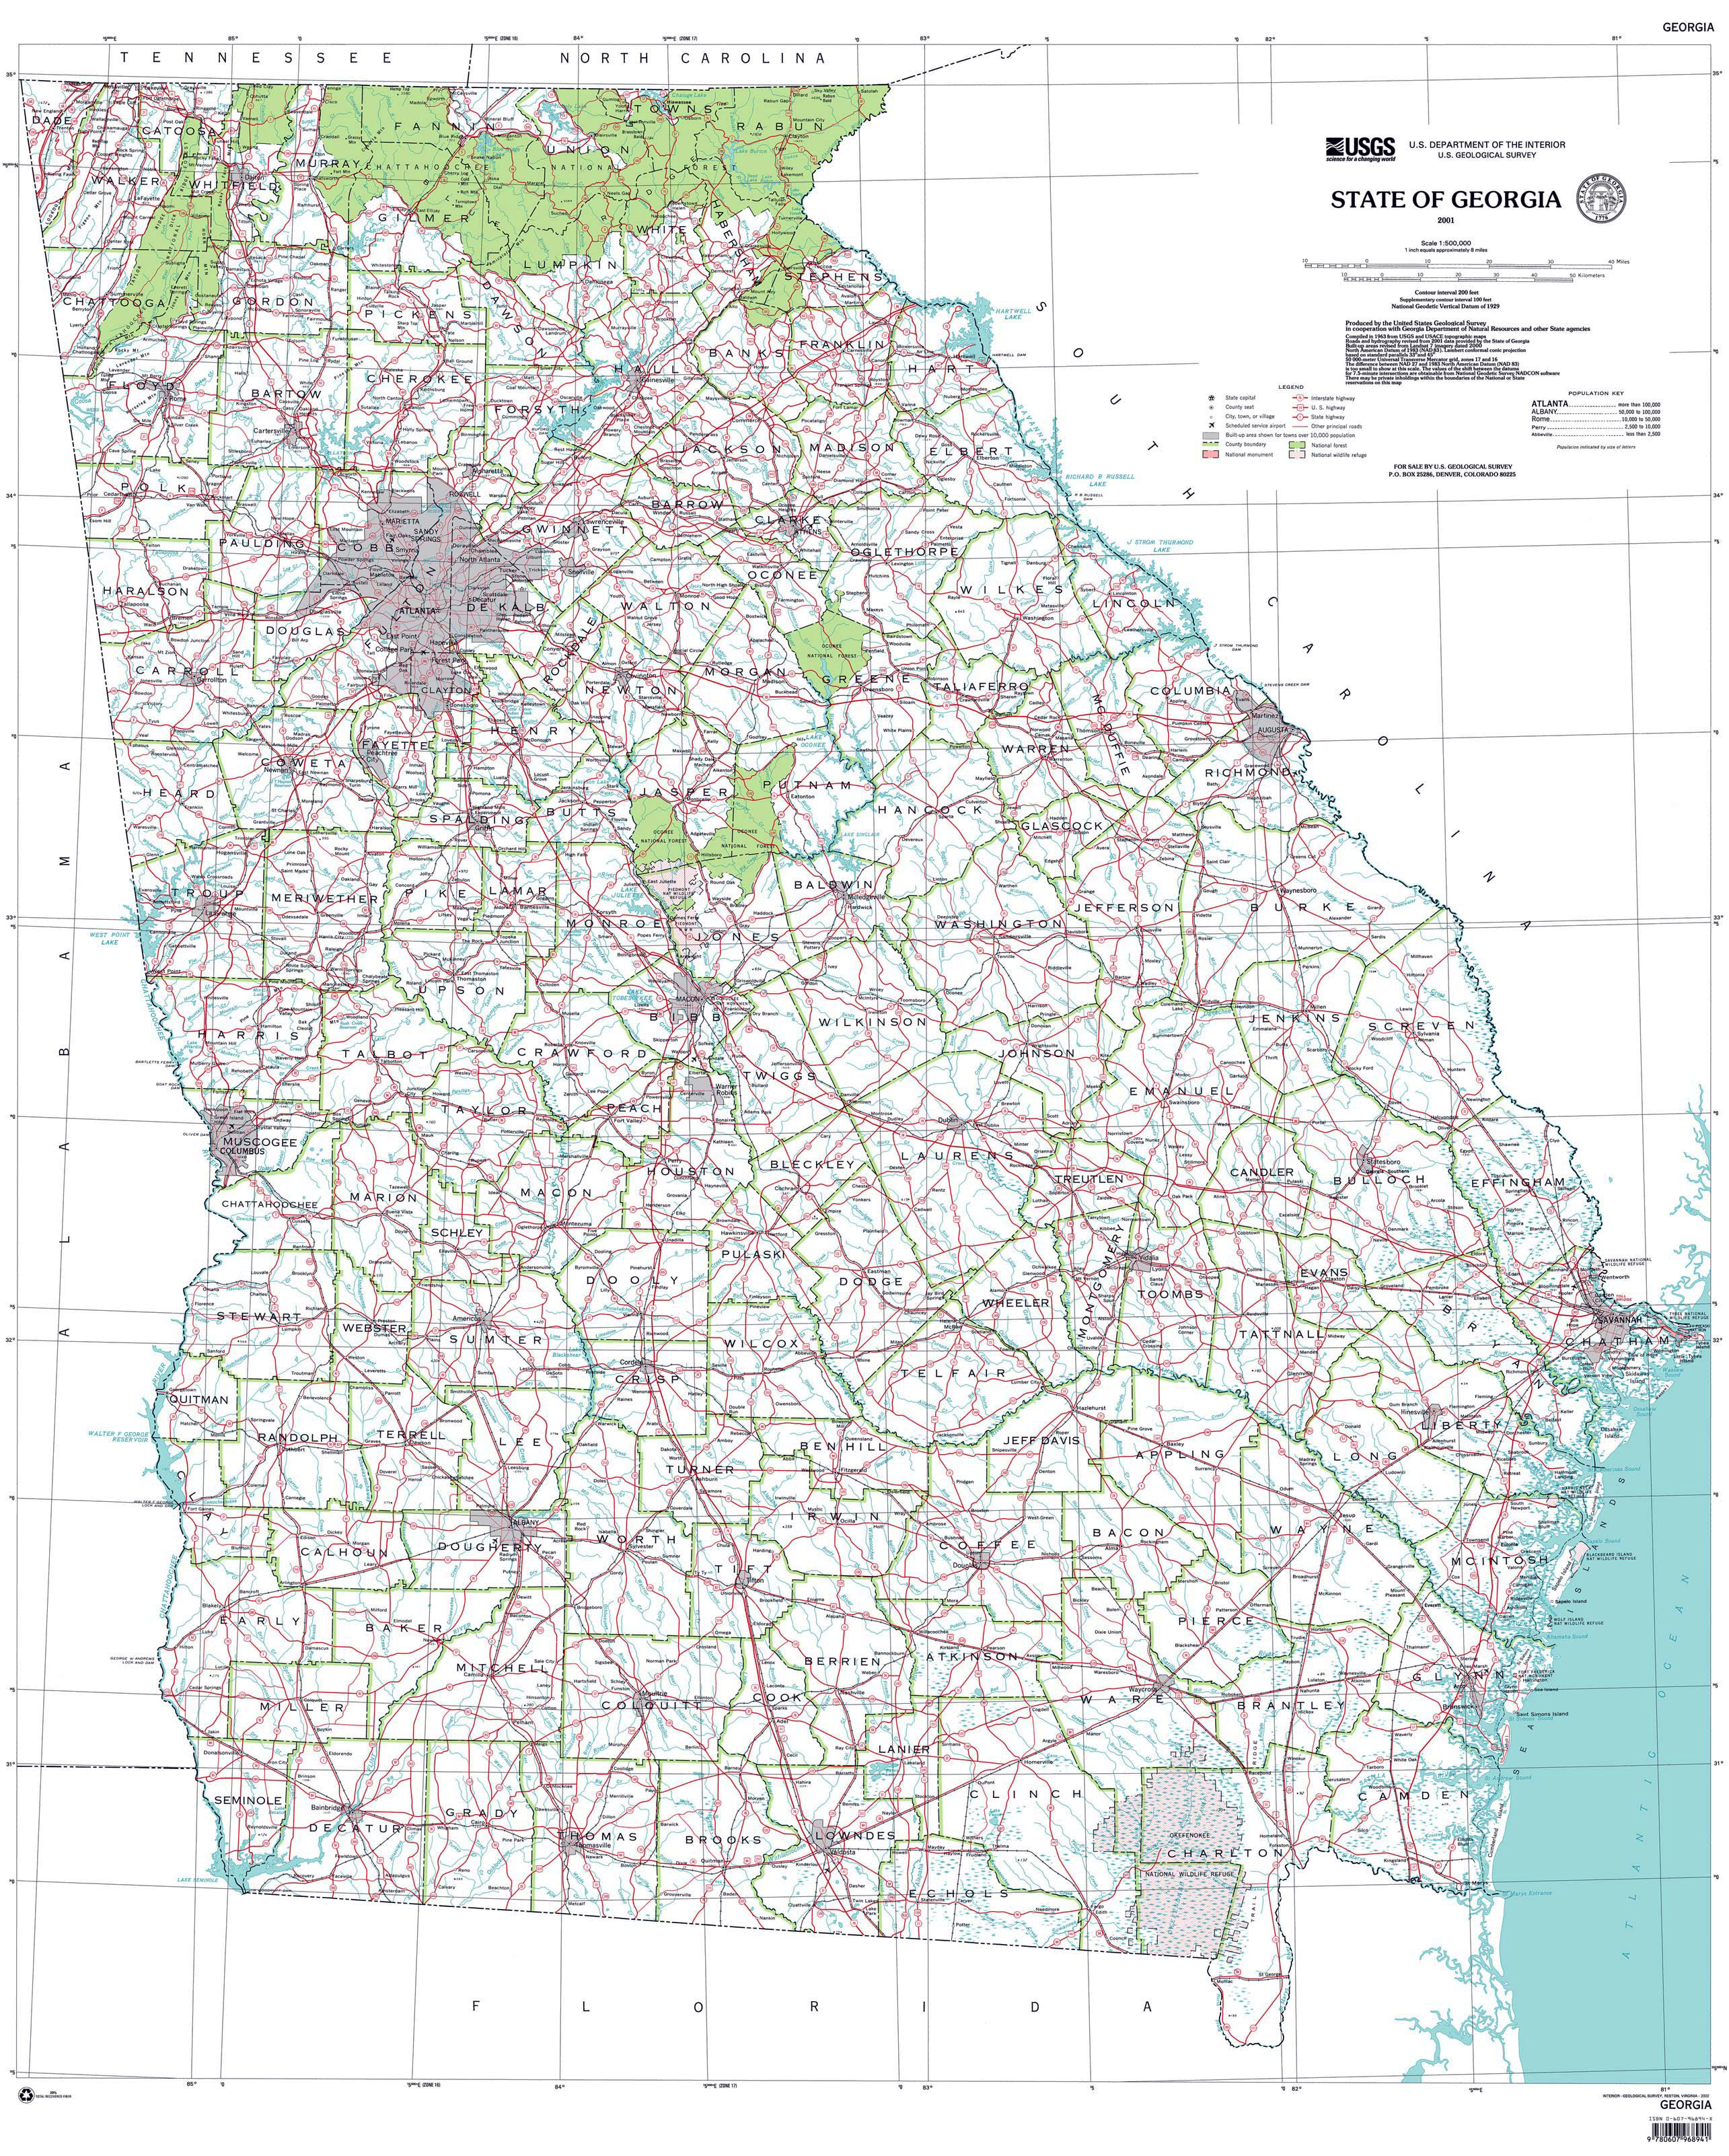 detailed administrative map of georgia state  vidianicom  maps  - detailed administrative map of georgia state